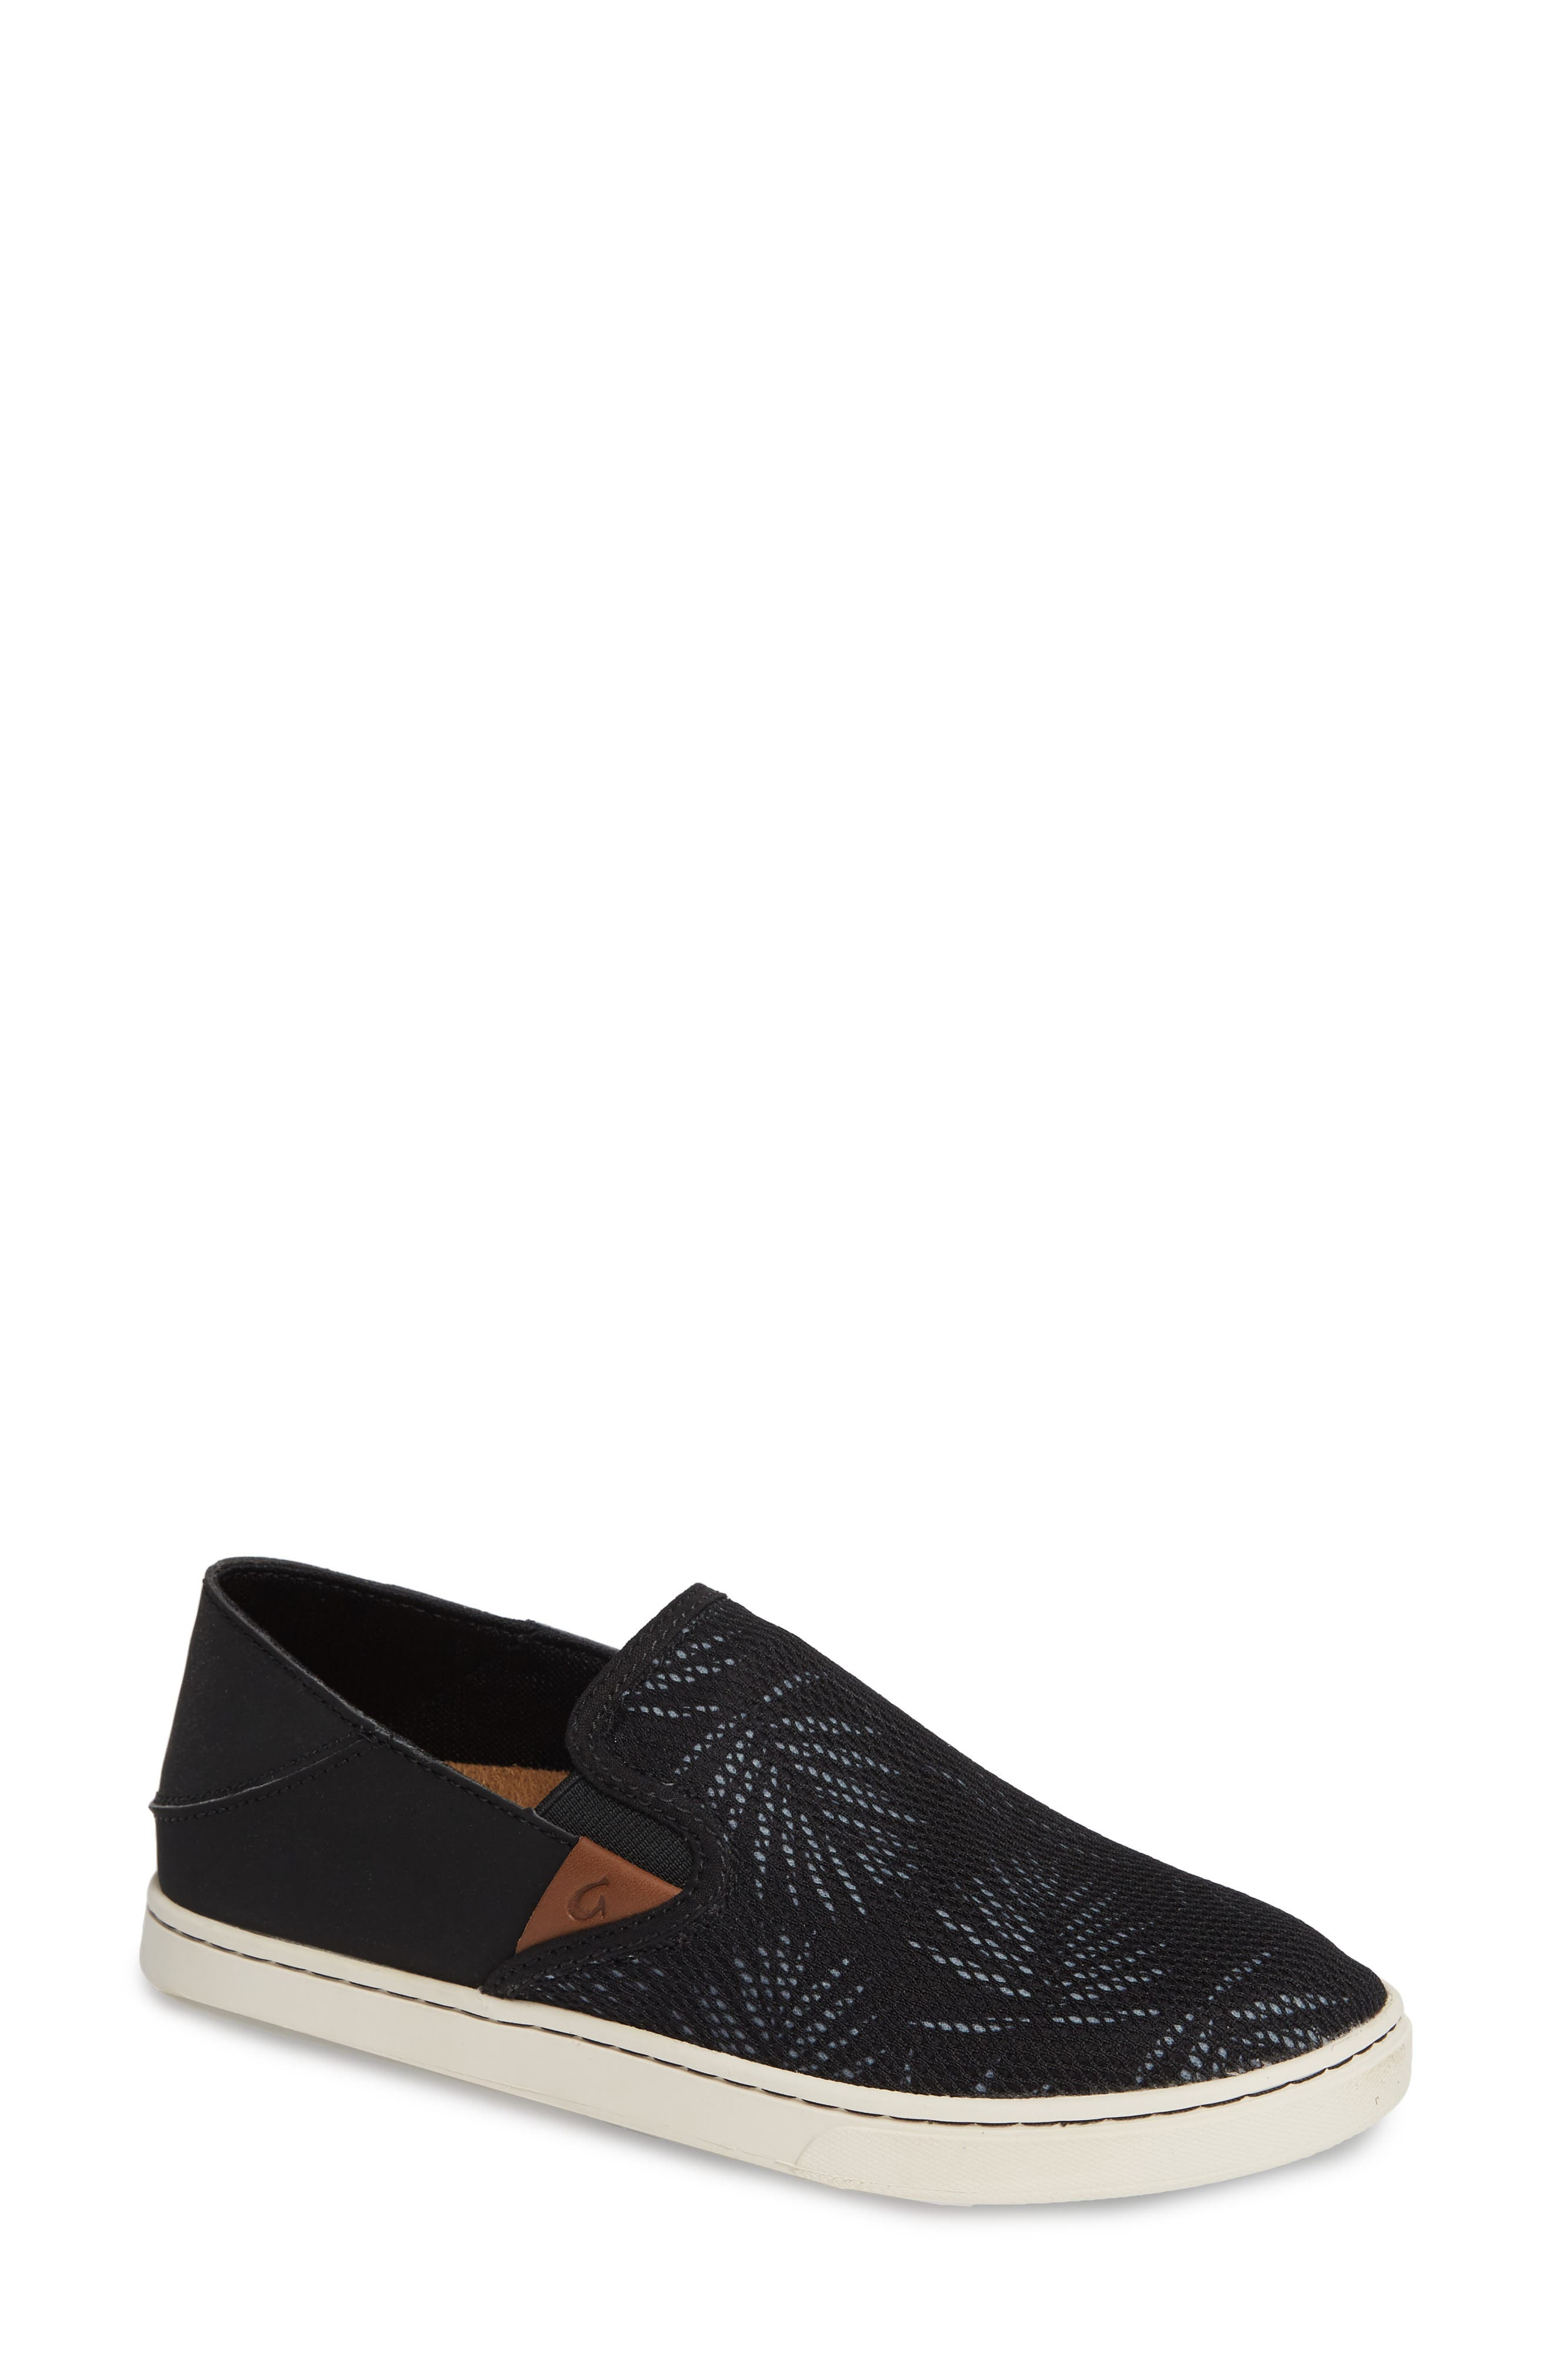 'Pehuea' Slip-On Sneaker,                             Main thumbnail 1, color,                             Black/ Palm Fabric